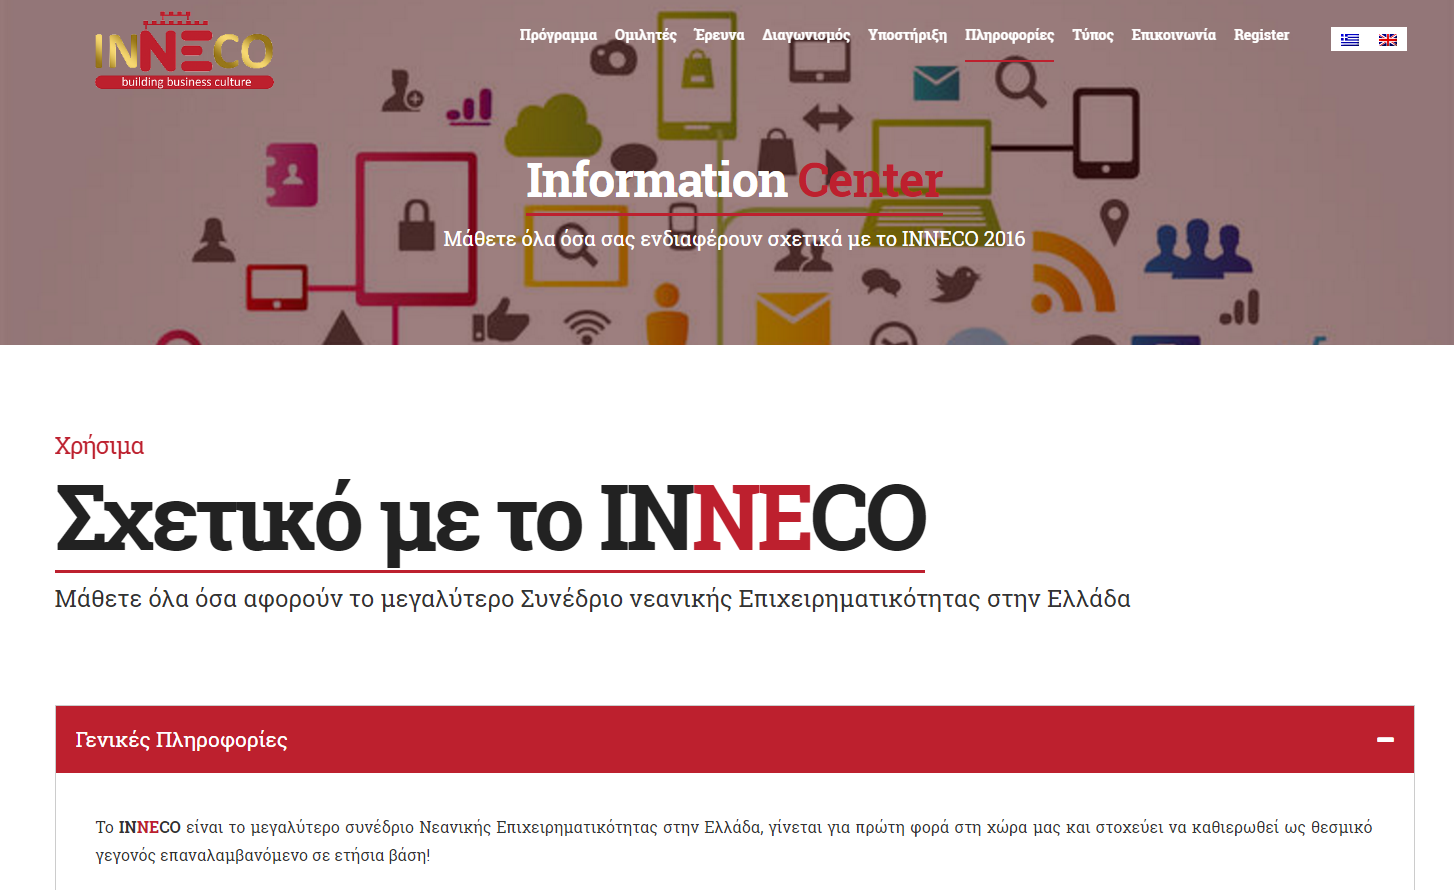 inneco About